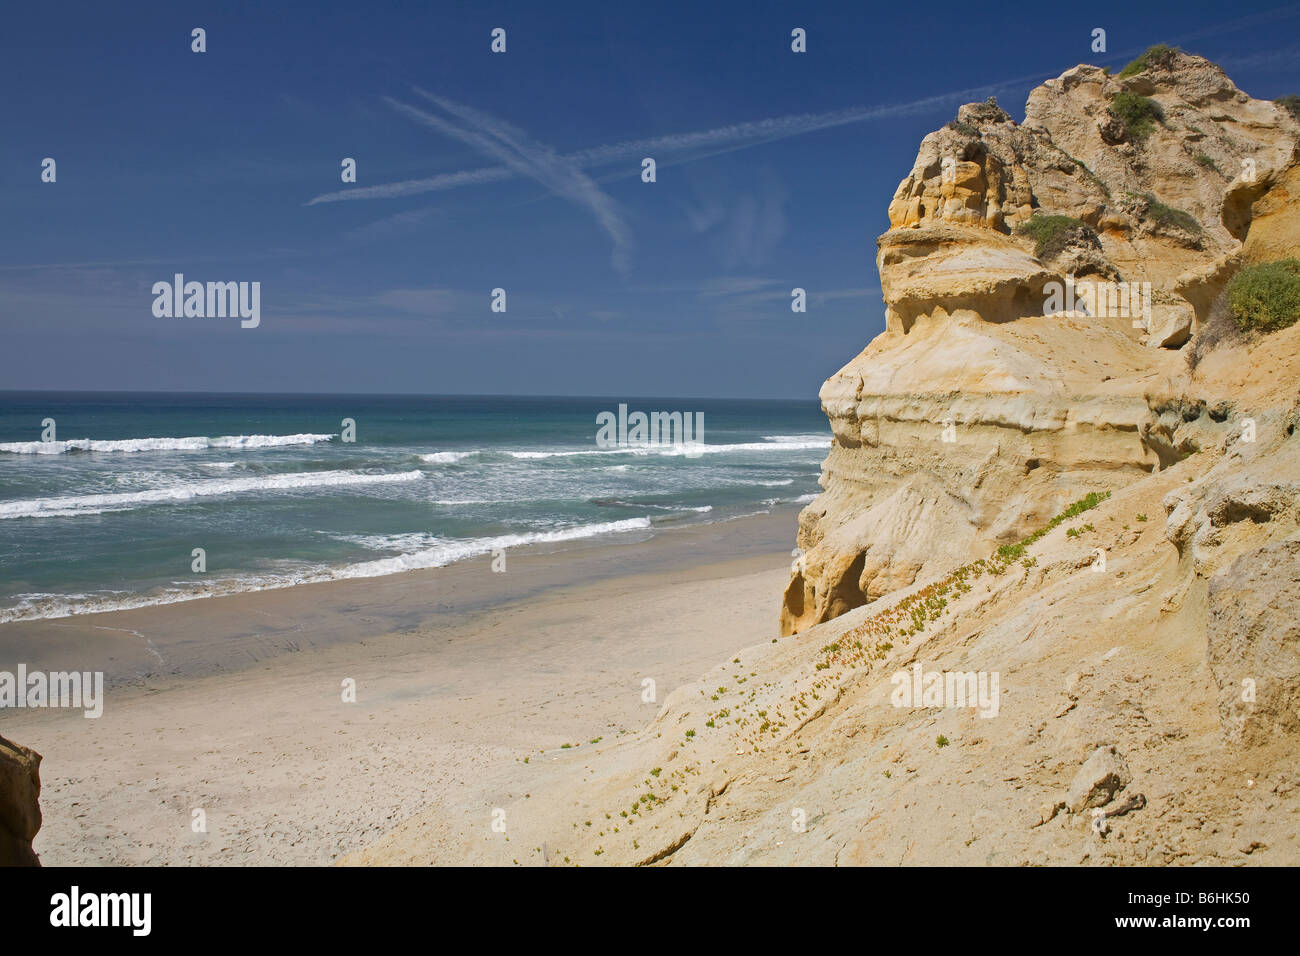 CALIFORNIA - Weathered and eroded sandstone bluffs along the Pacific Coast near Flat Rock in Torrey Pines State - Stock Image